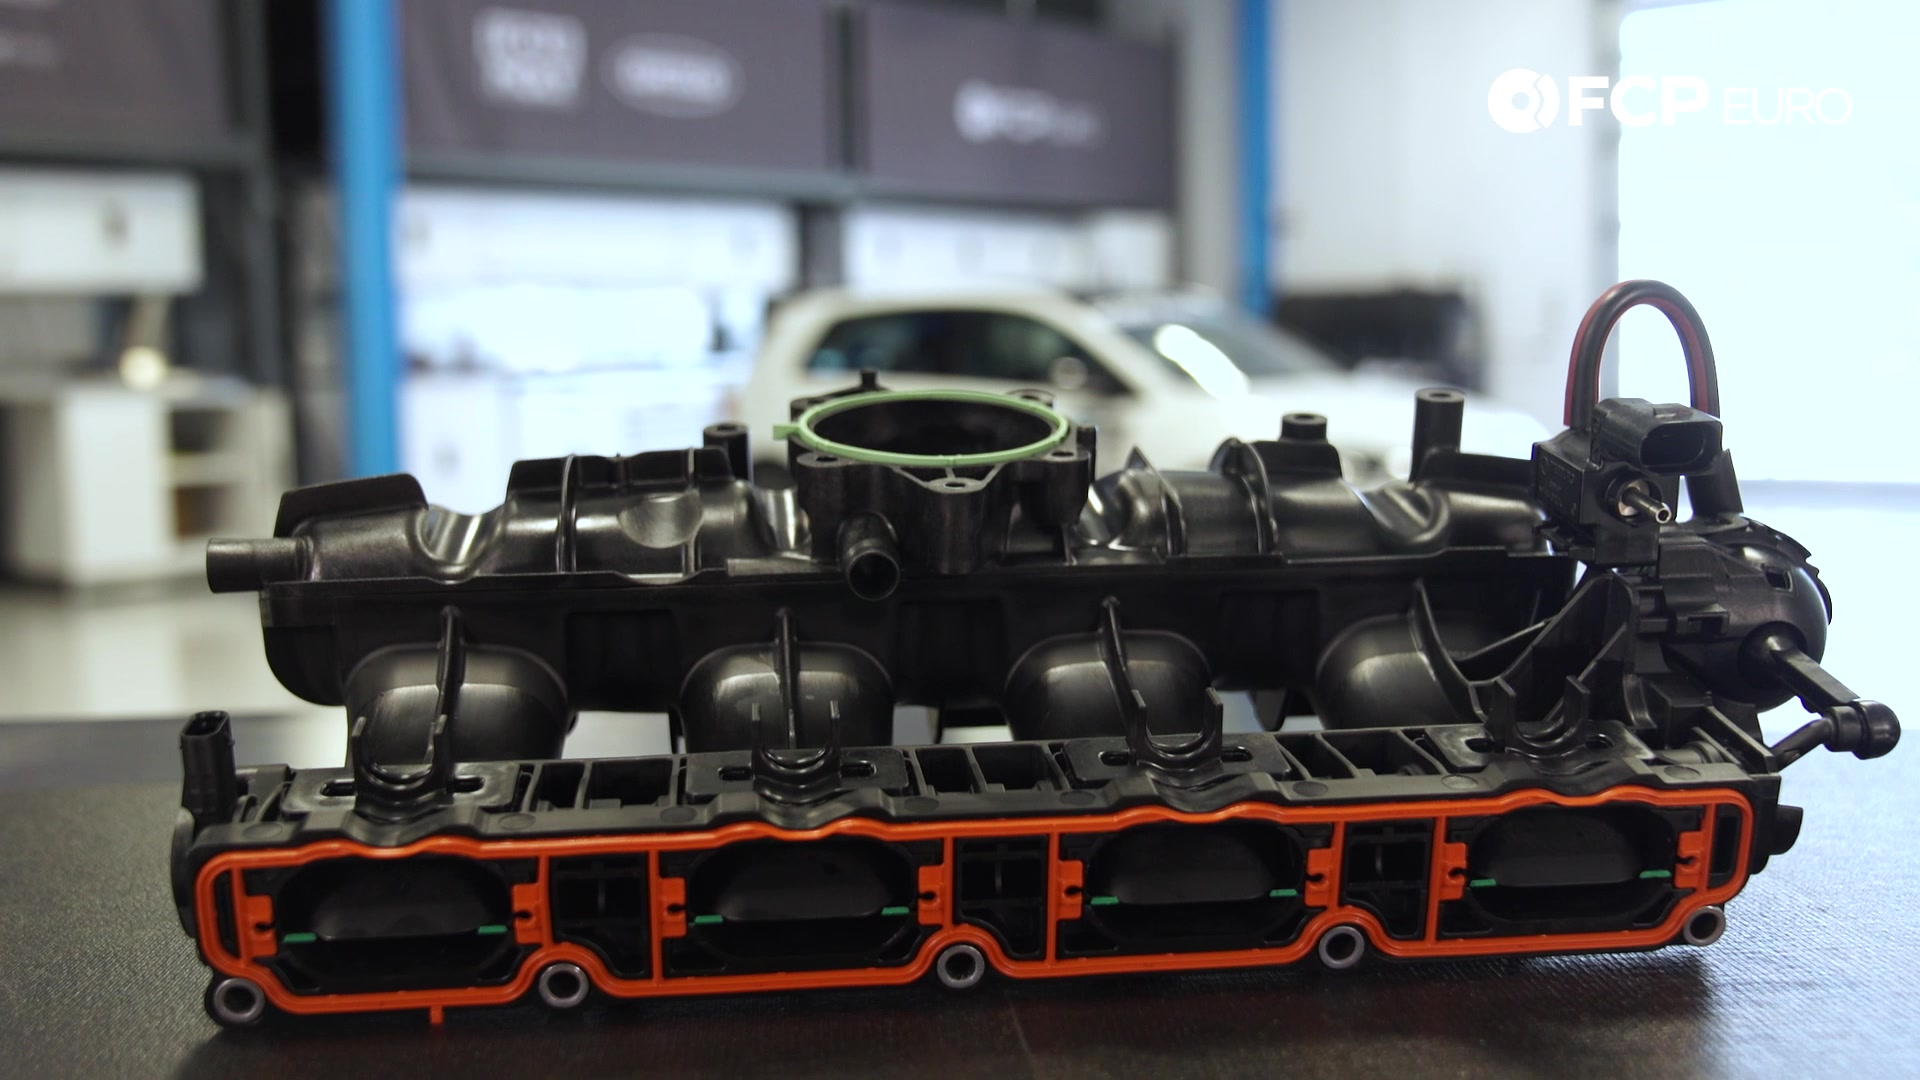 audi volkswagen mk6 gti a3 tiguan more intake manifold features symptoms and product